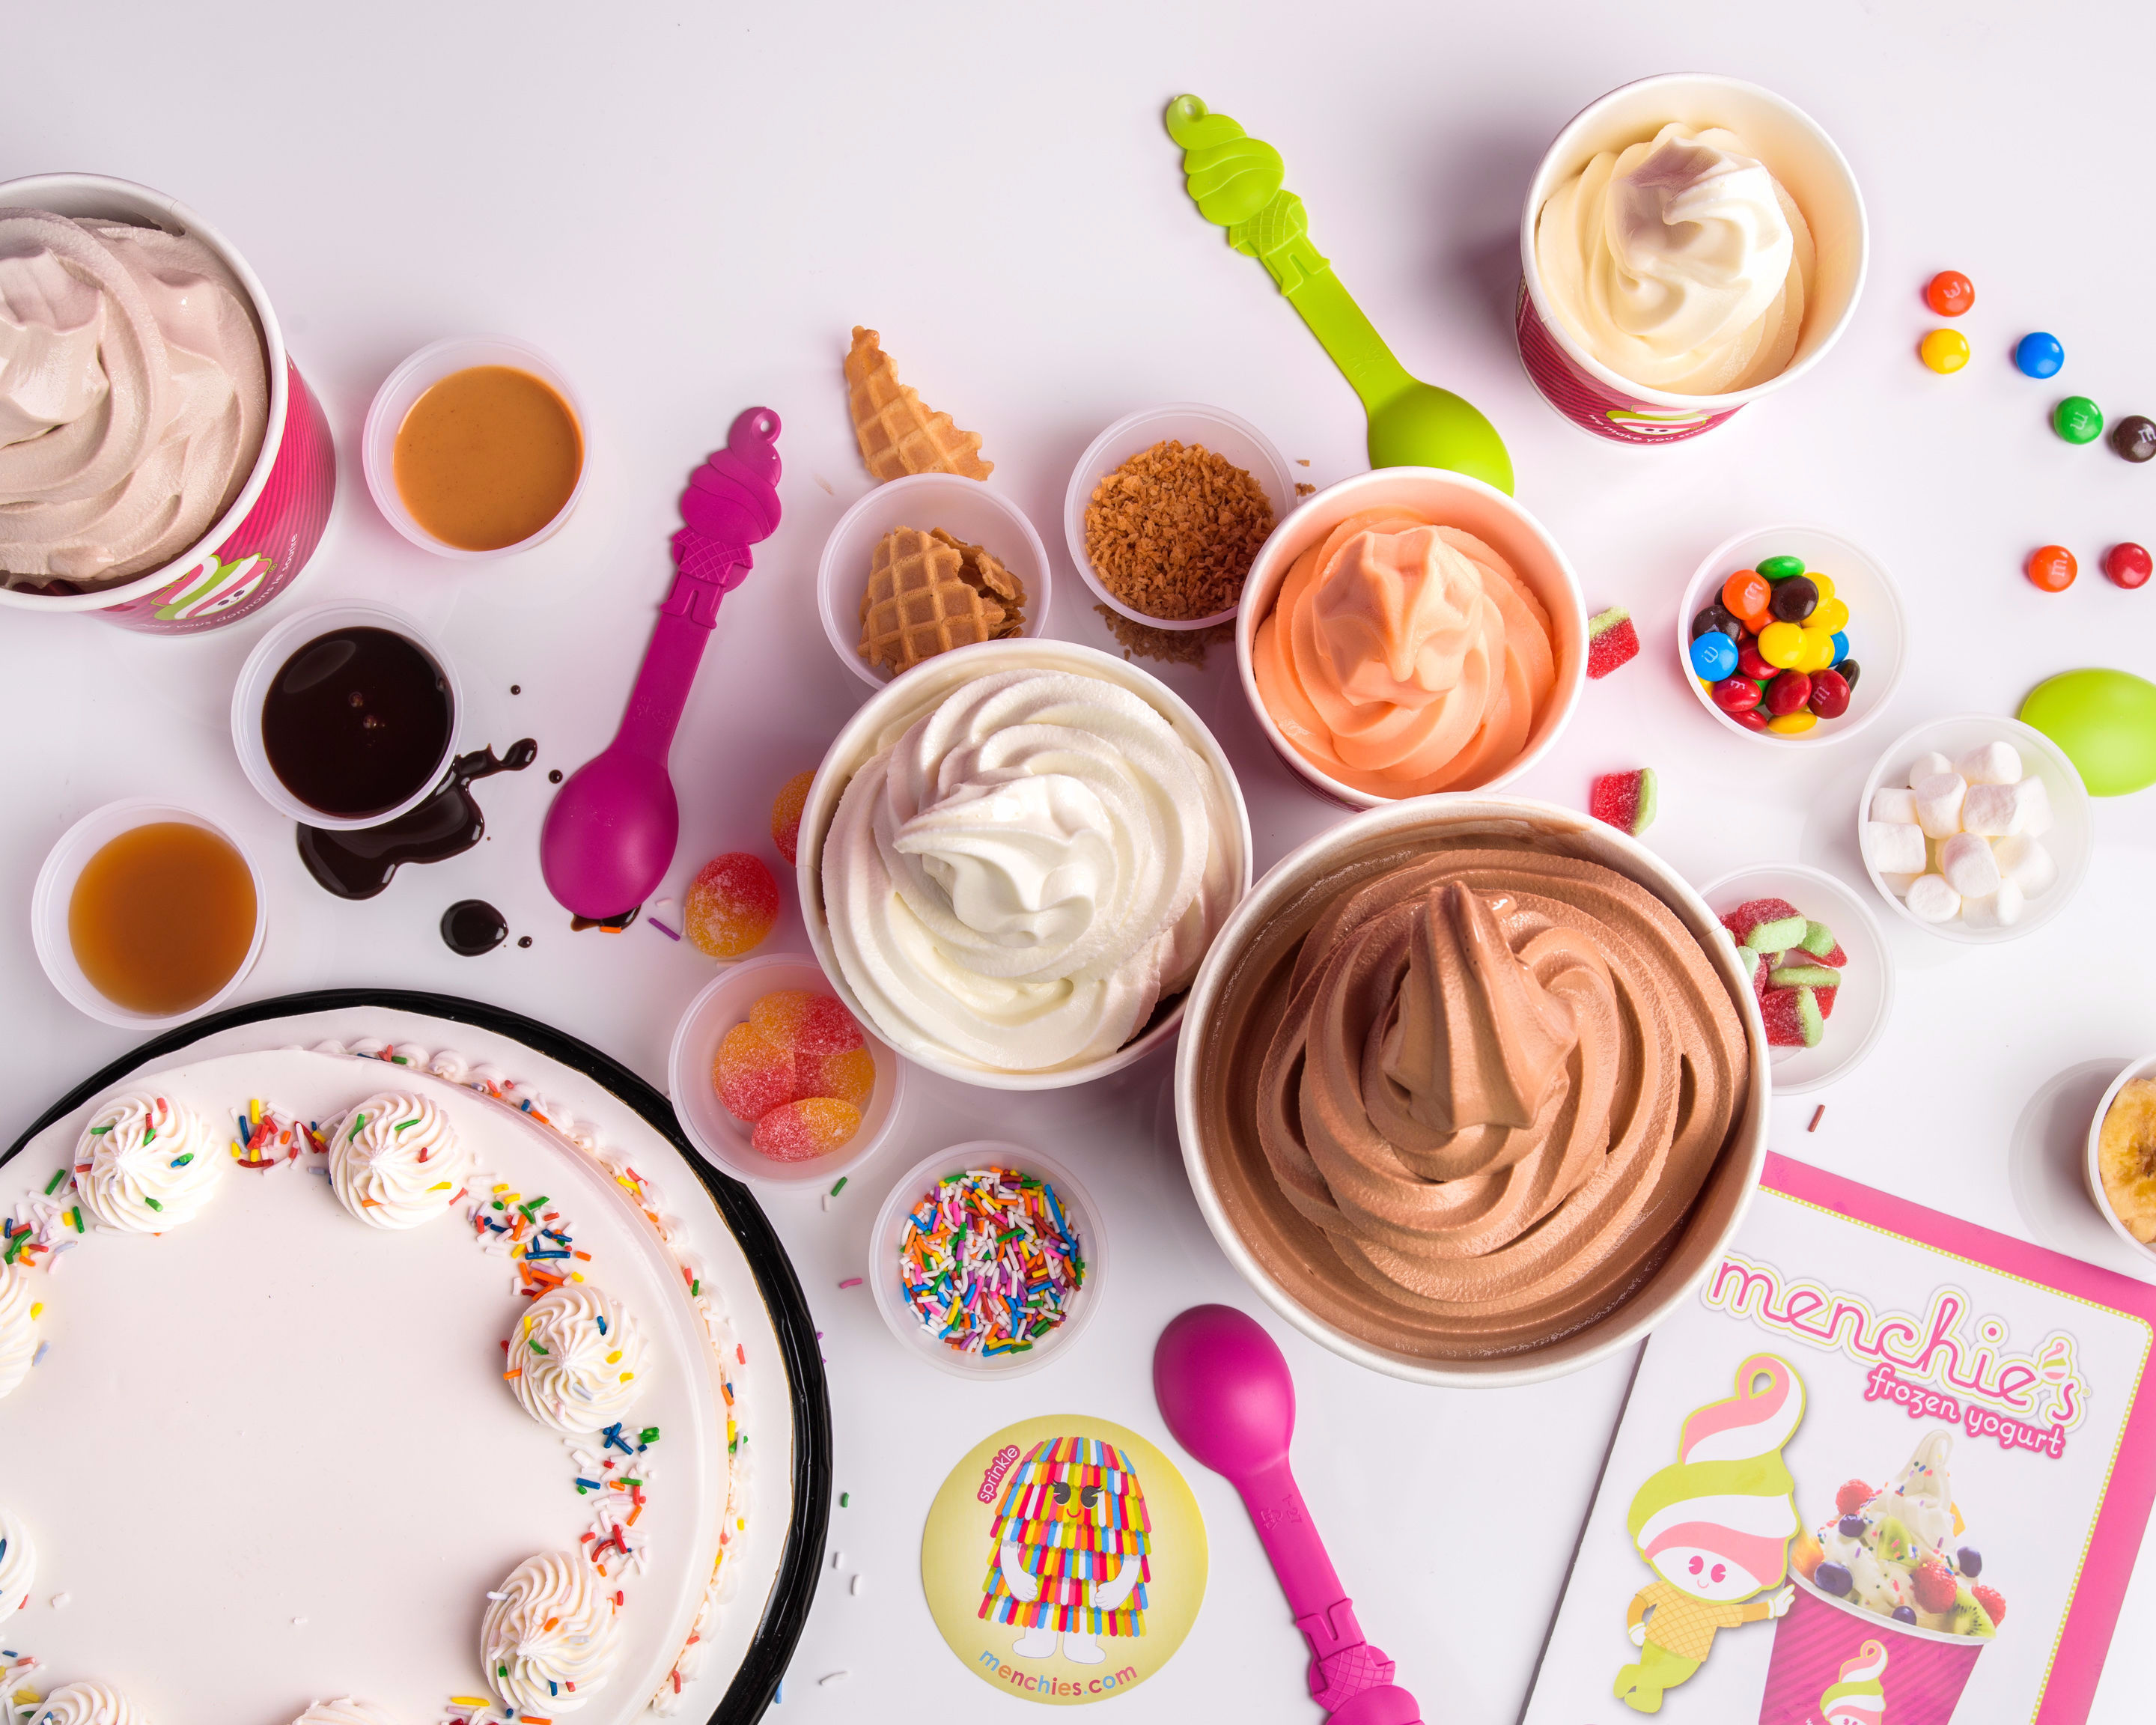 Background image for My Smileage, the loyalty program of Menchie's Frozen Yogurt.